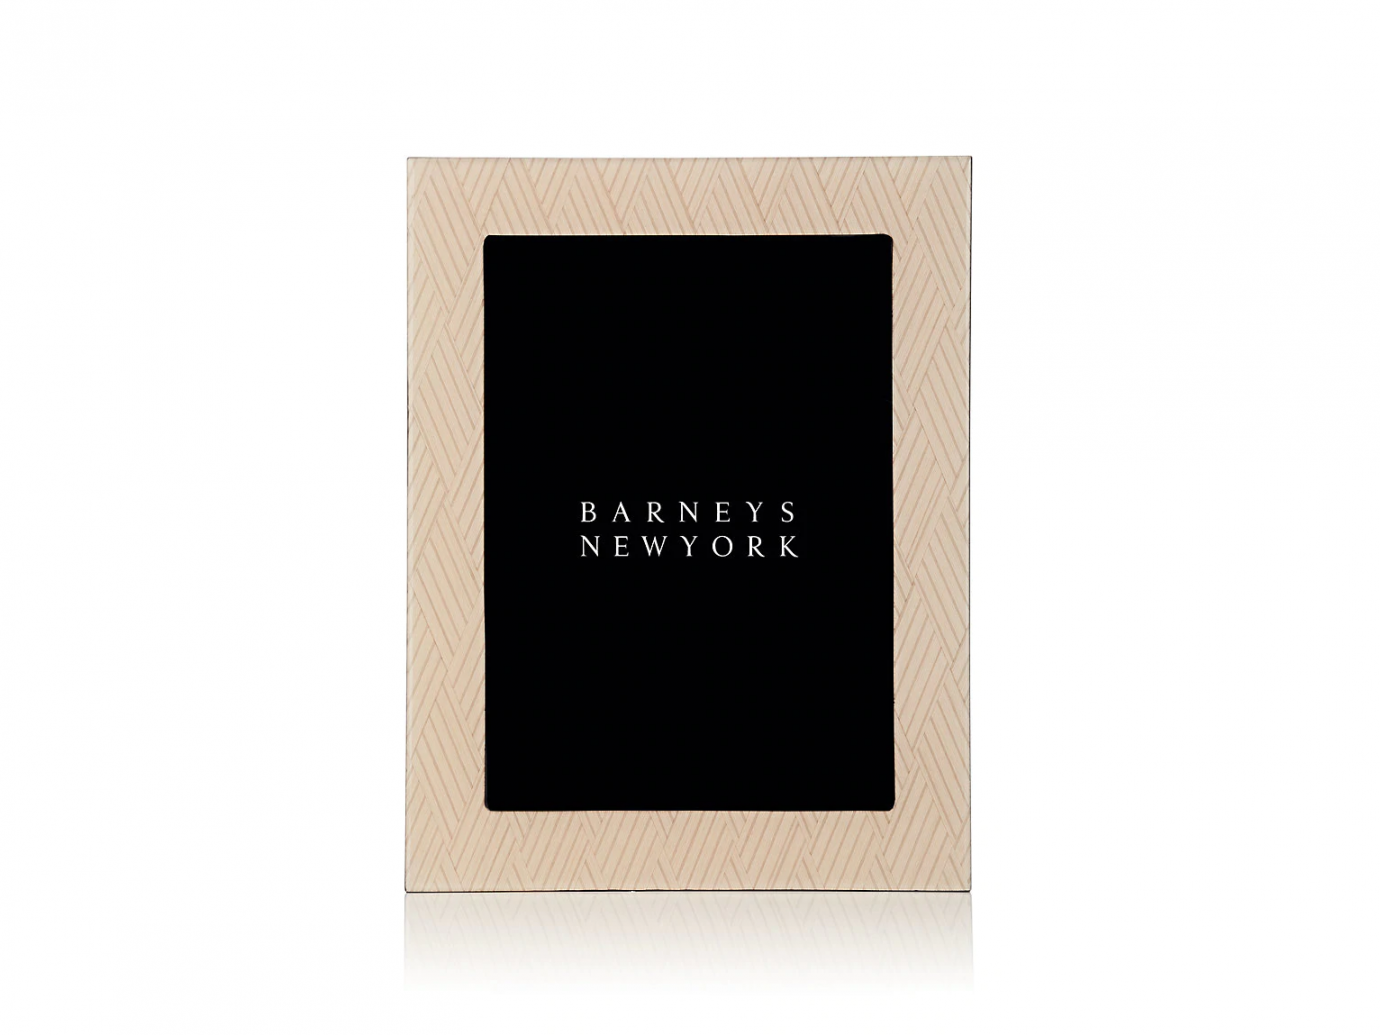 Barney's Basket-weave 5x7 Picture frame